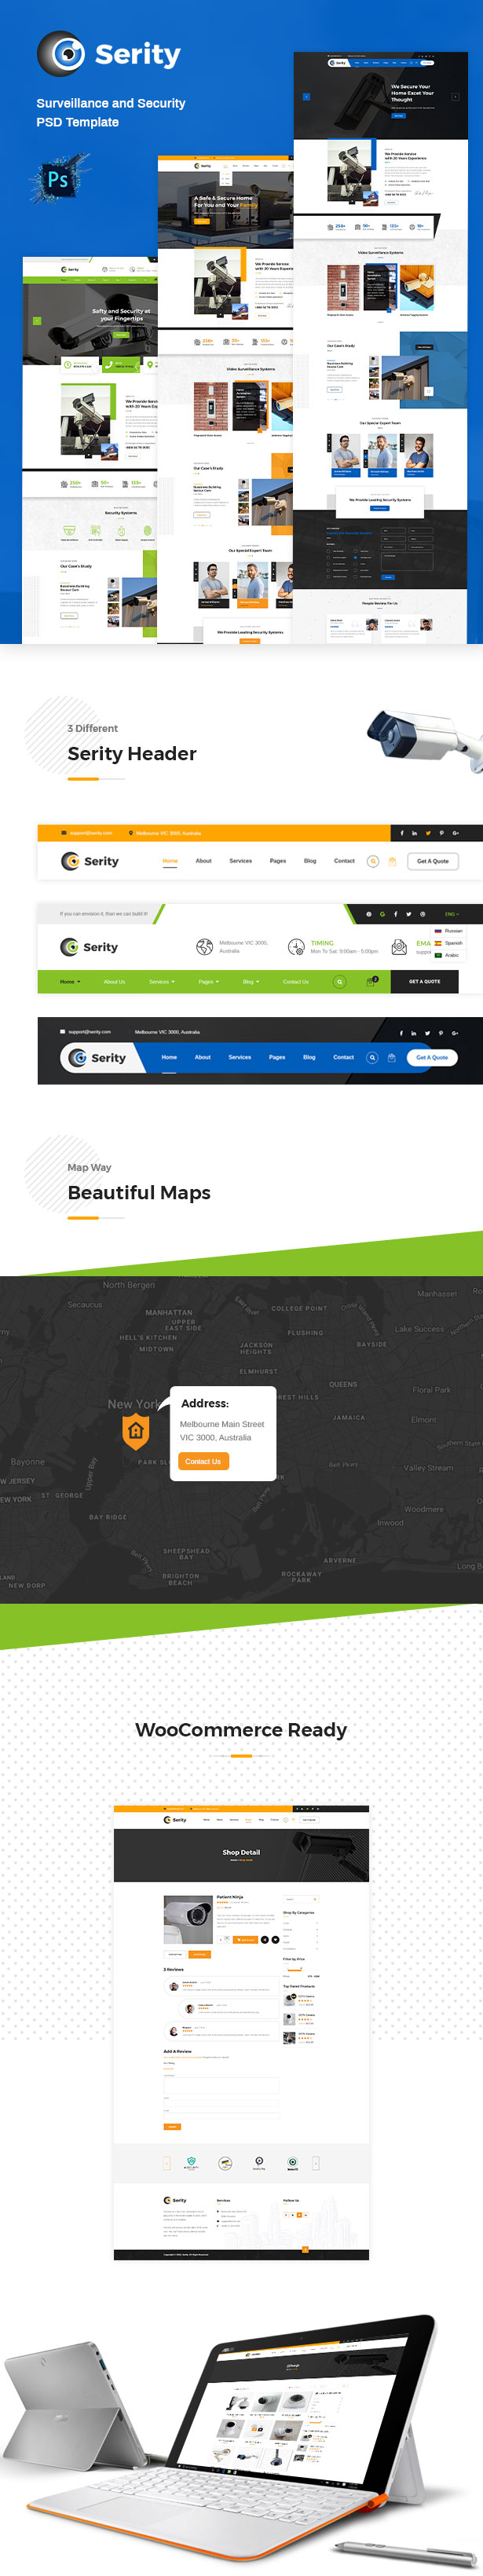 Serity - CCTV and Security Cameras HTML Template - 2